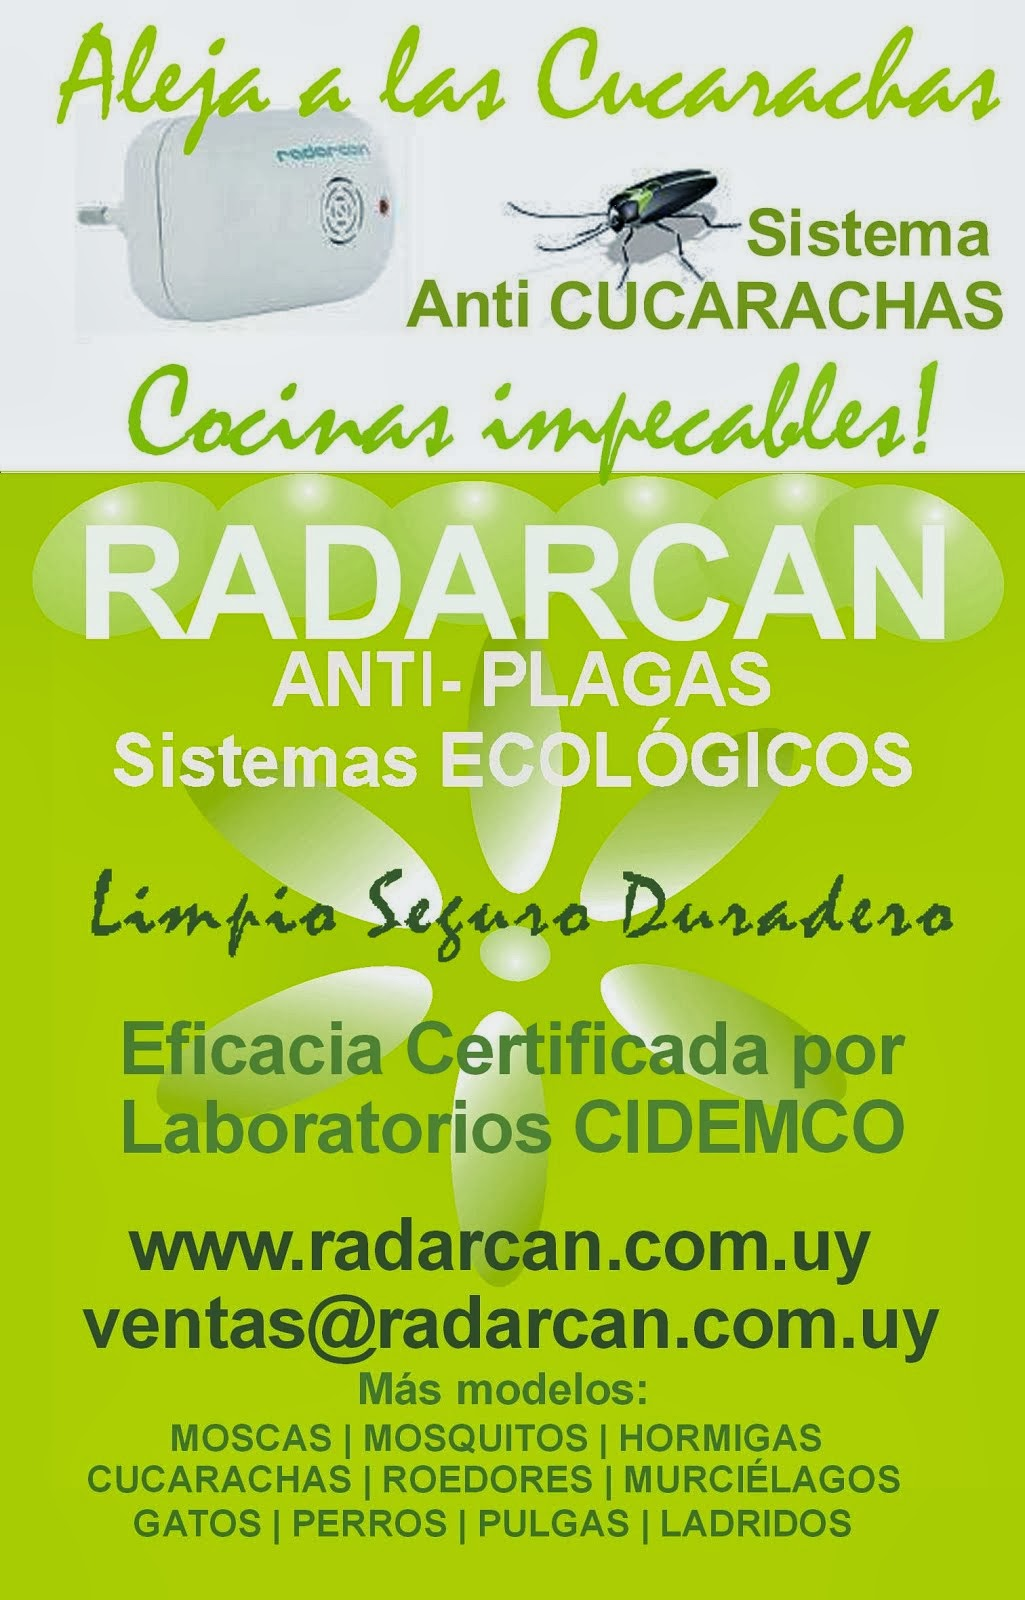 Radarcan Anti Cucarachas